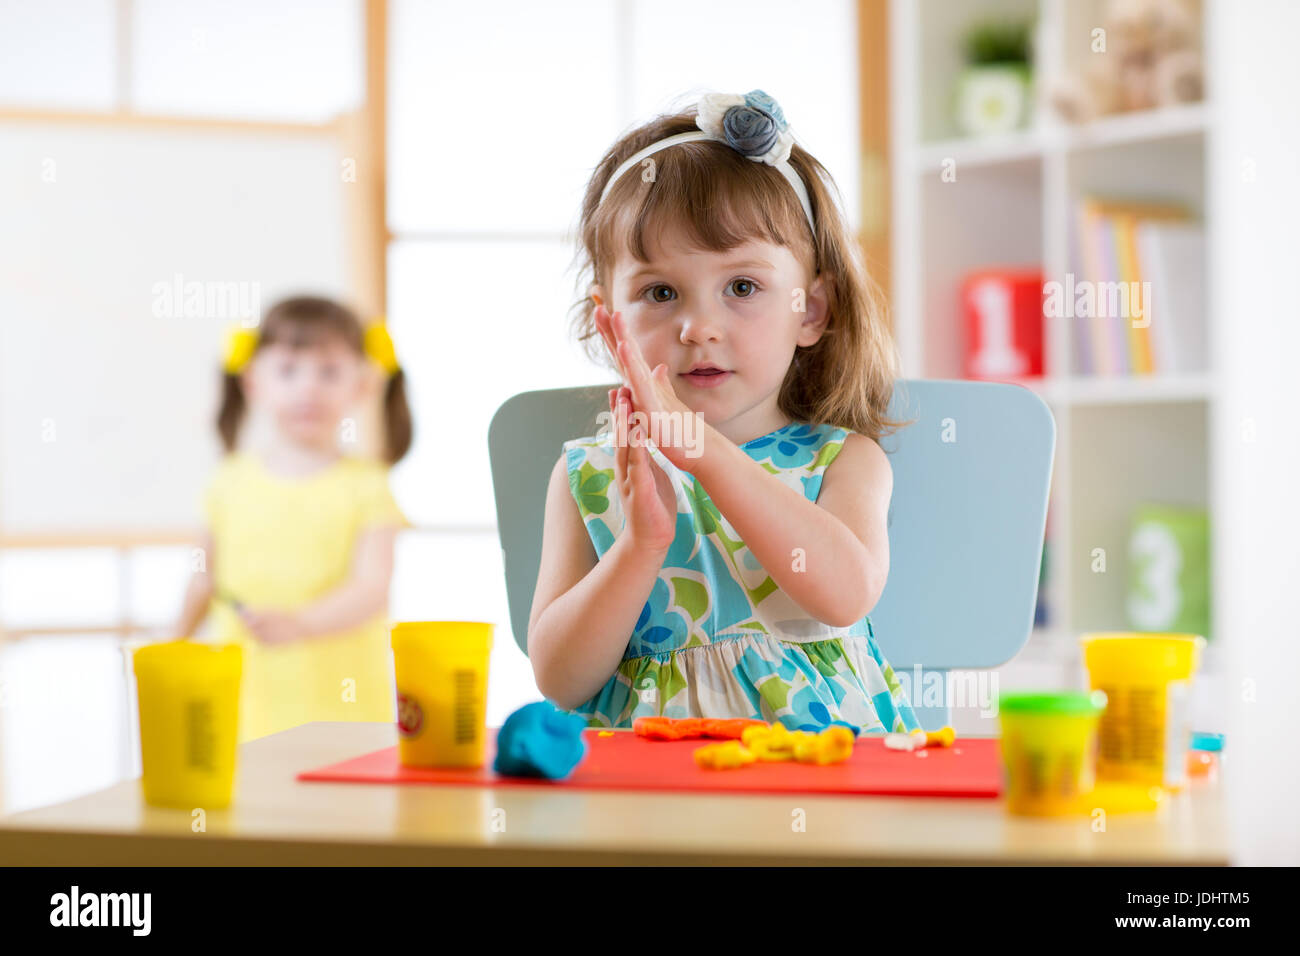 Preschooler girl having fun together with colorful modeling clay at a daycare. Creative kid molding at home. Children - Stock Image